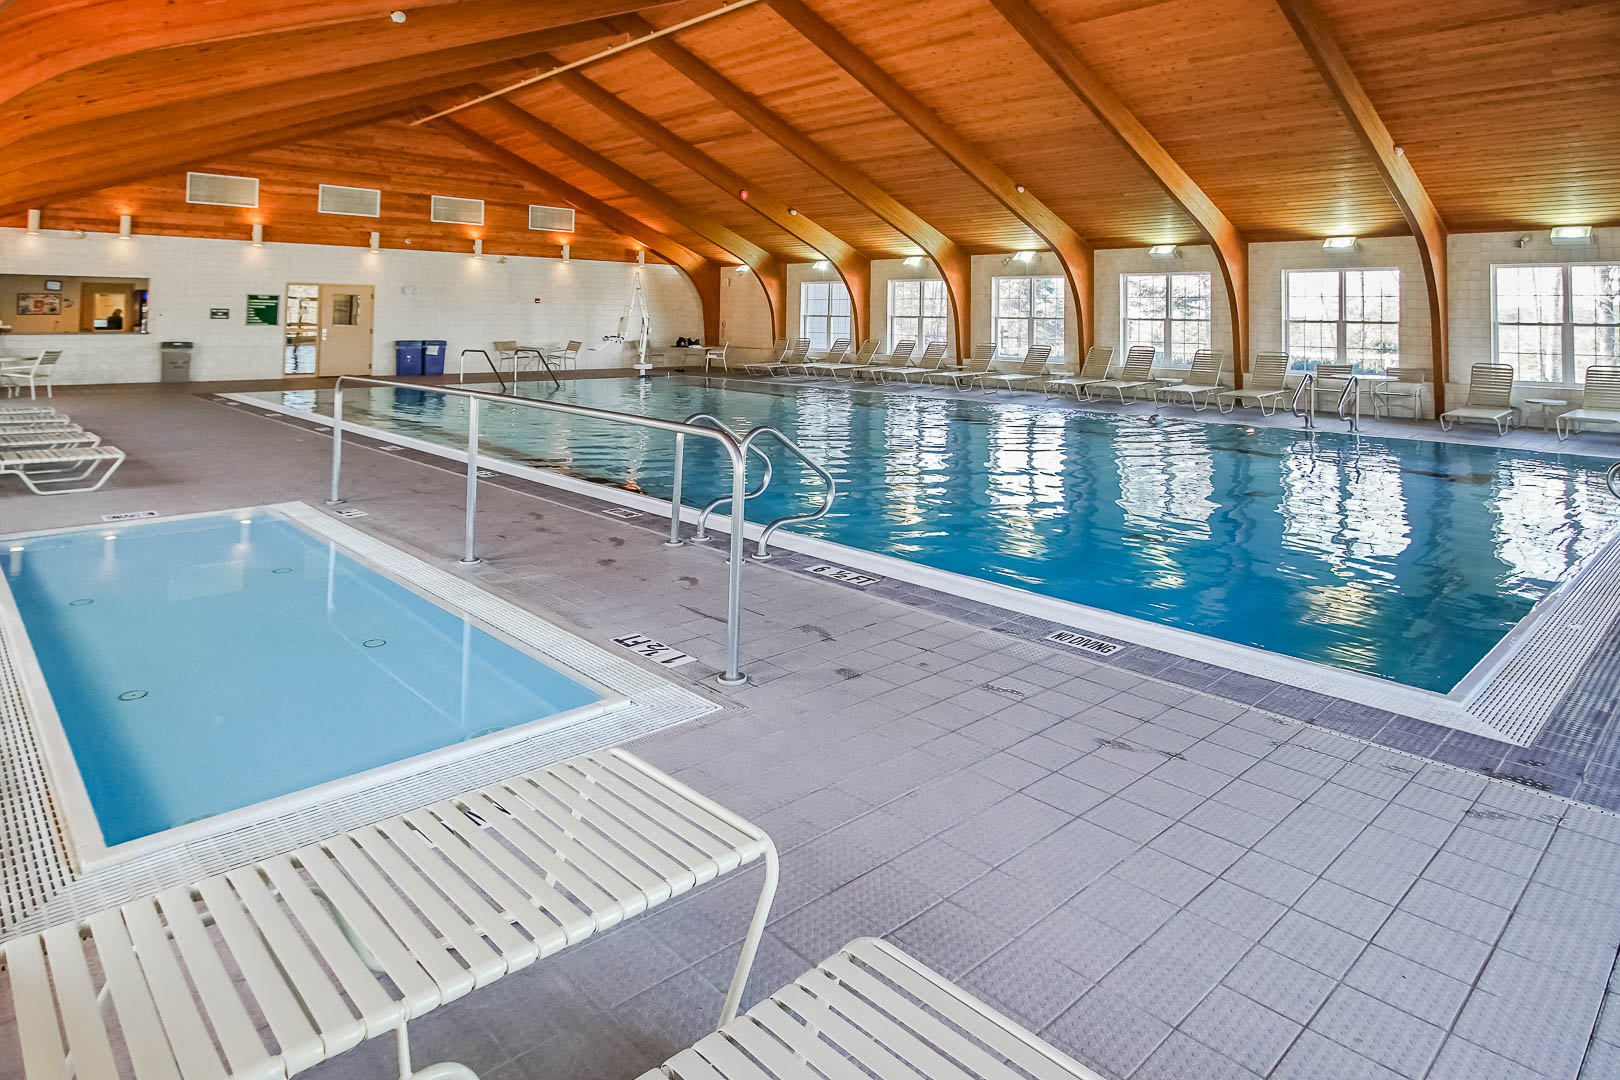 An expansive indoor pool at VRI's Tanglwood Resort in Pennsylvania.